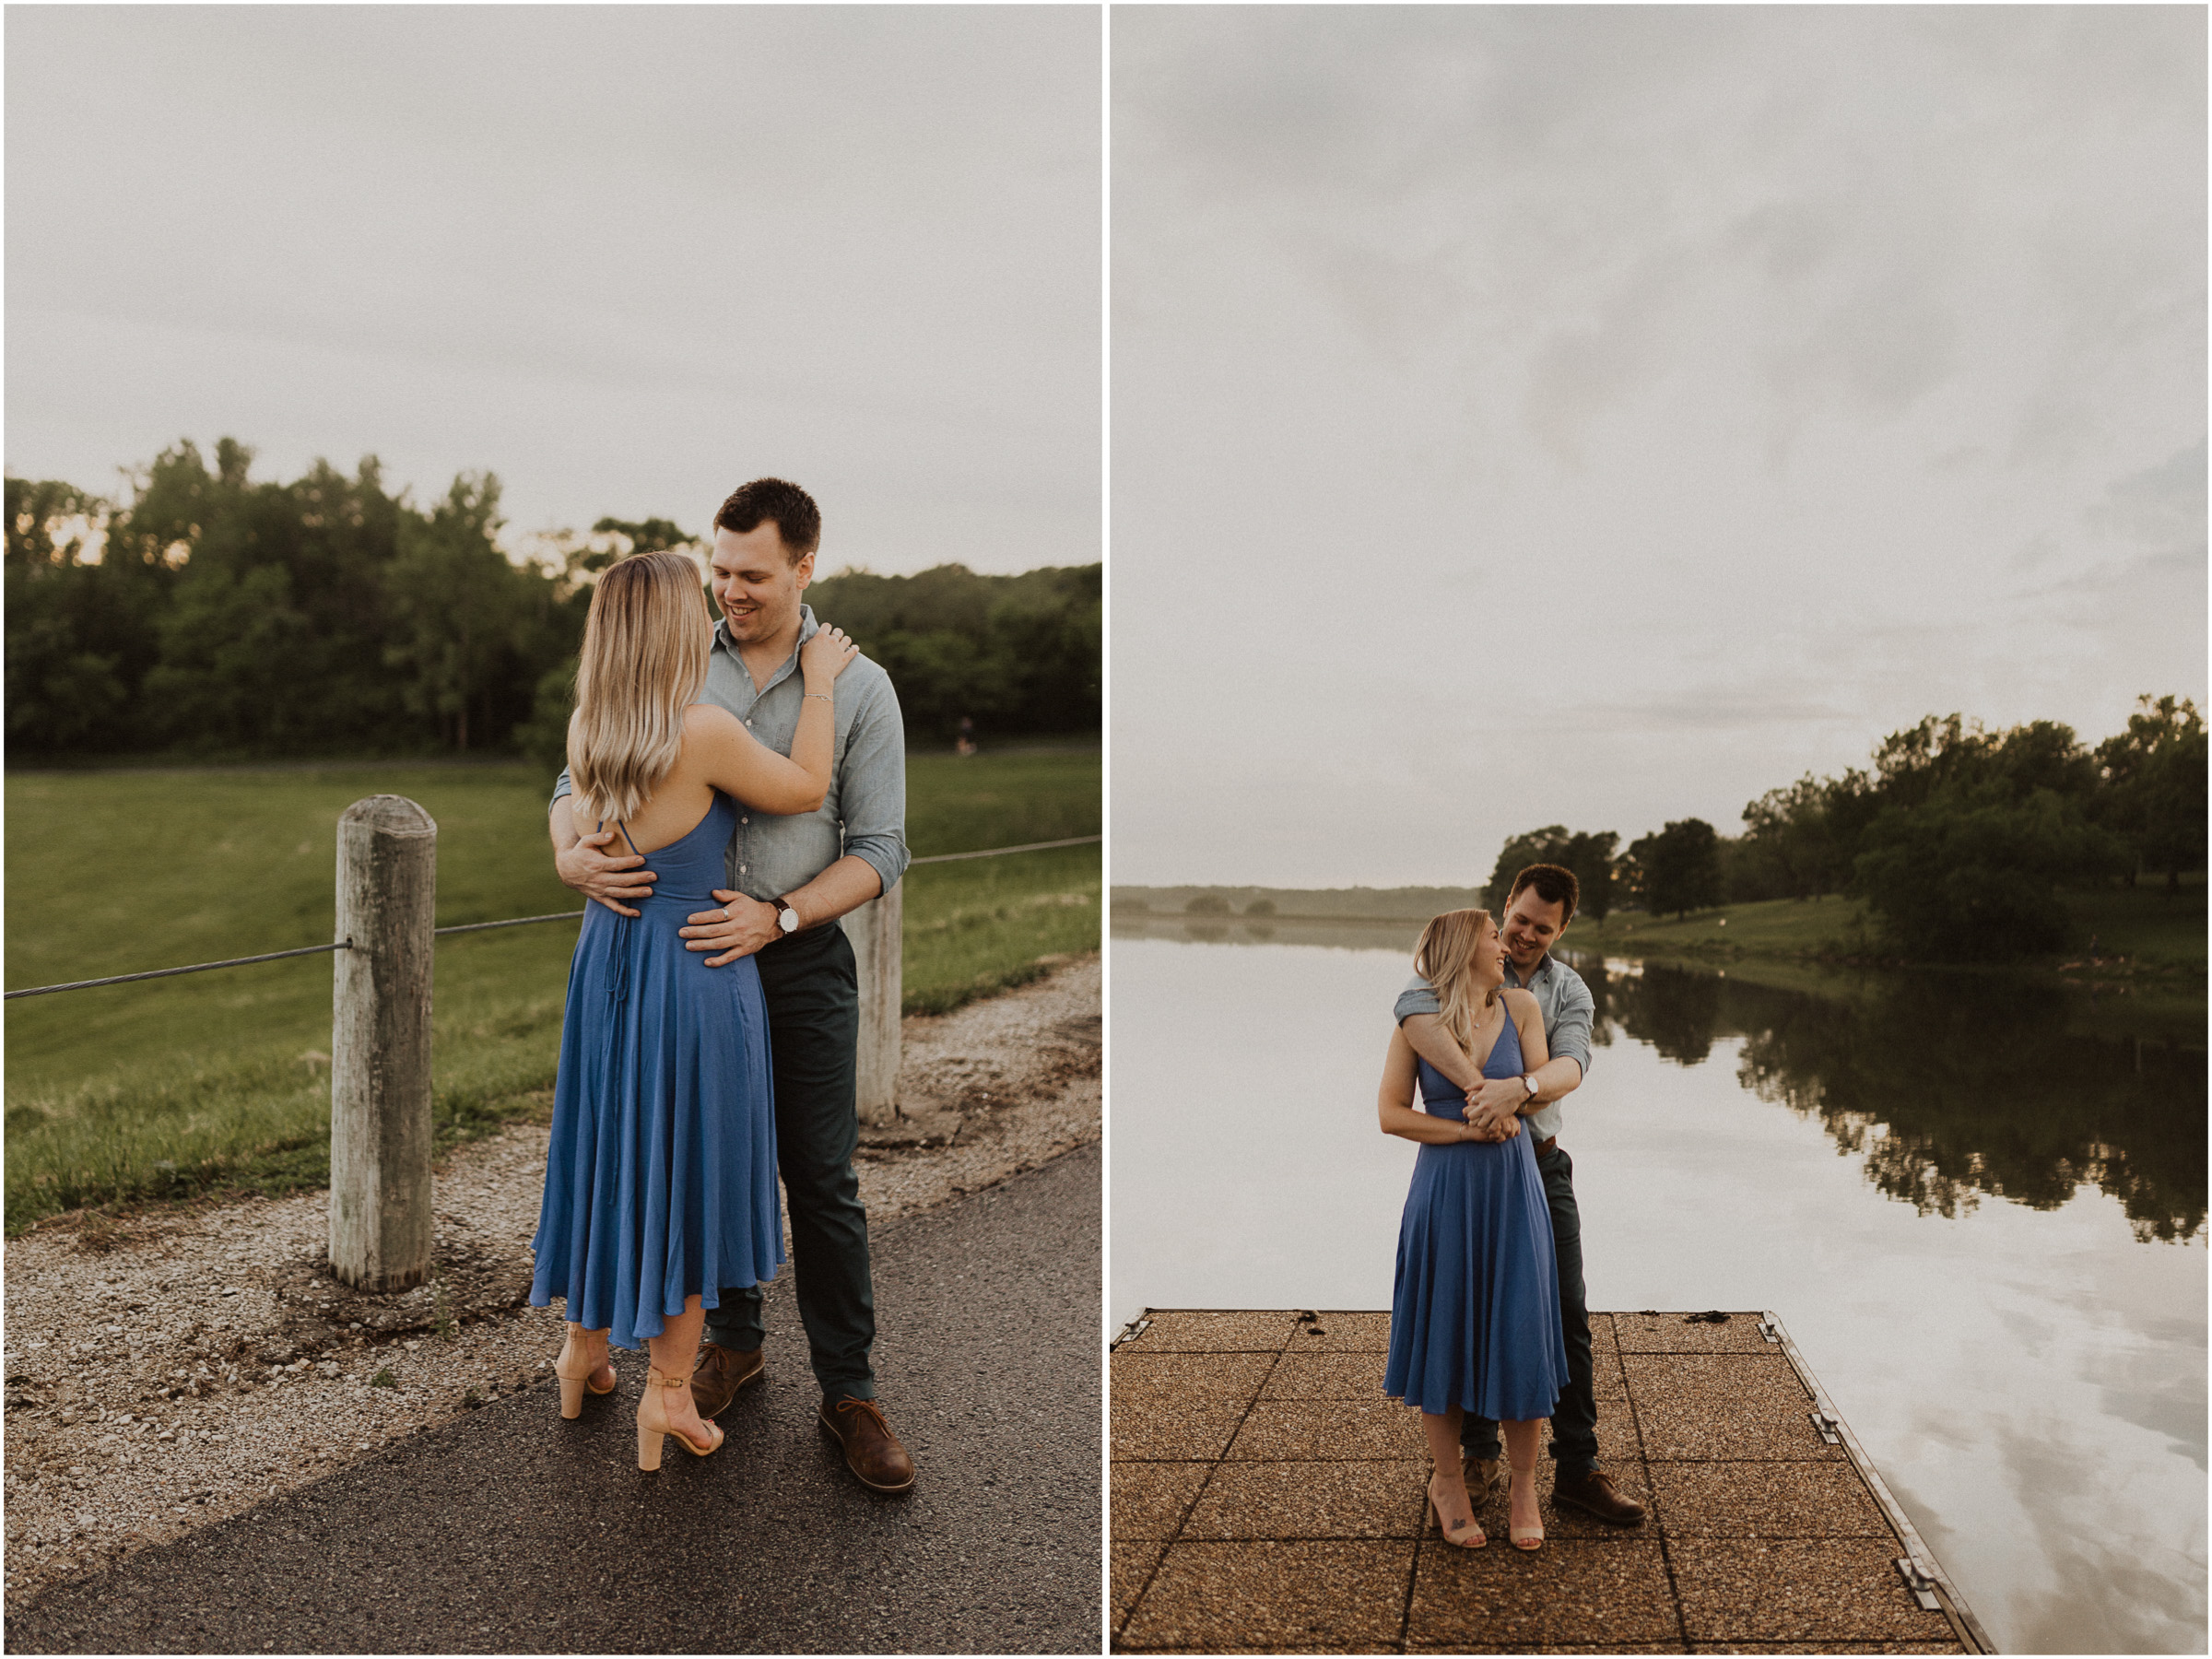 alyssa barletter photography shawnee mission park engagement session photographer sunset-26.jpg